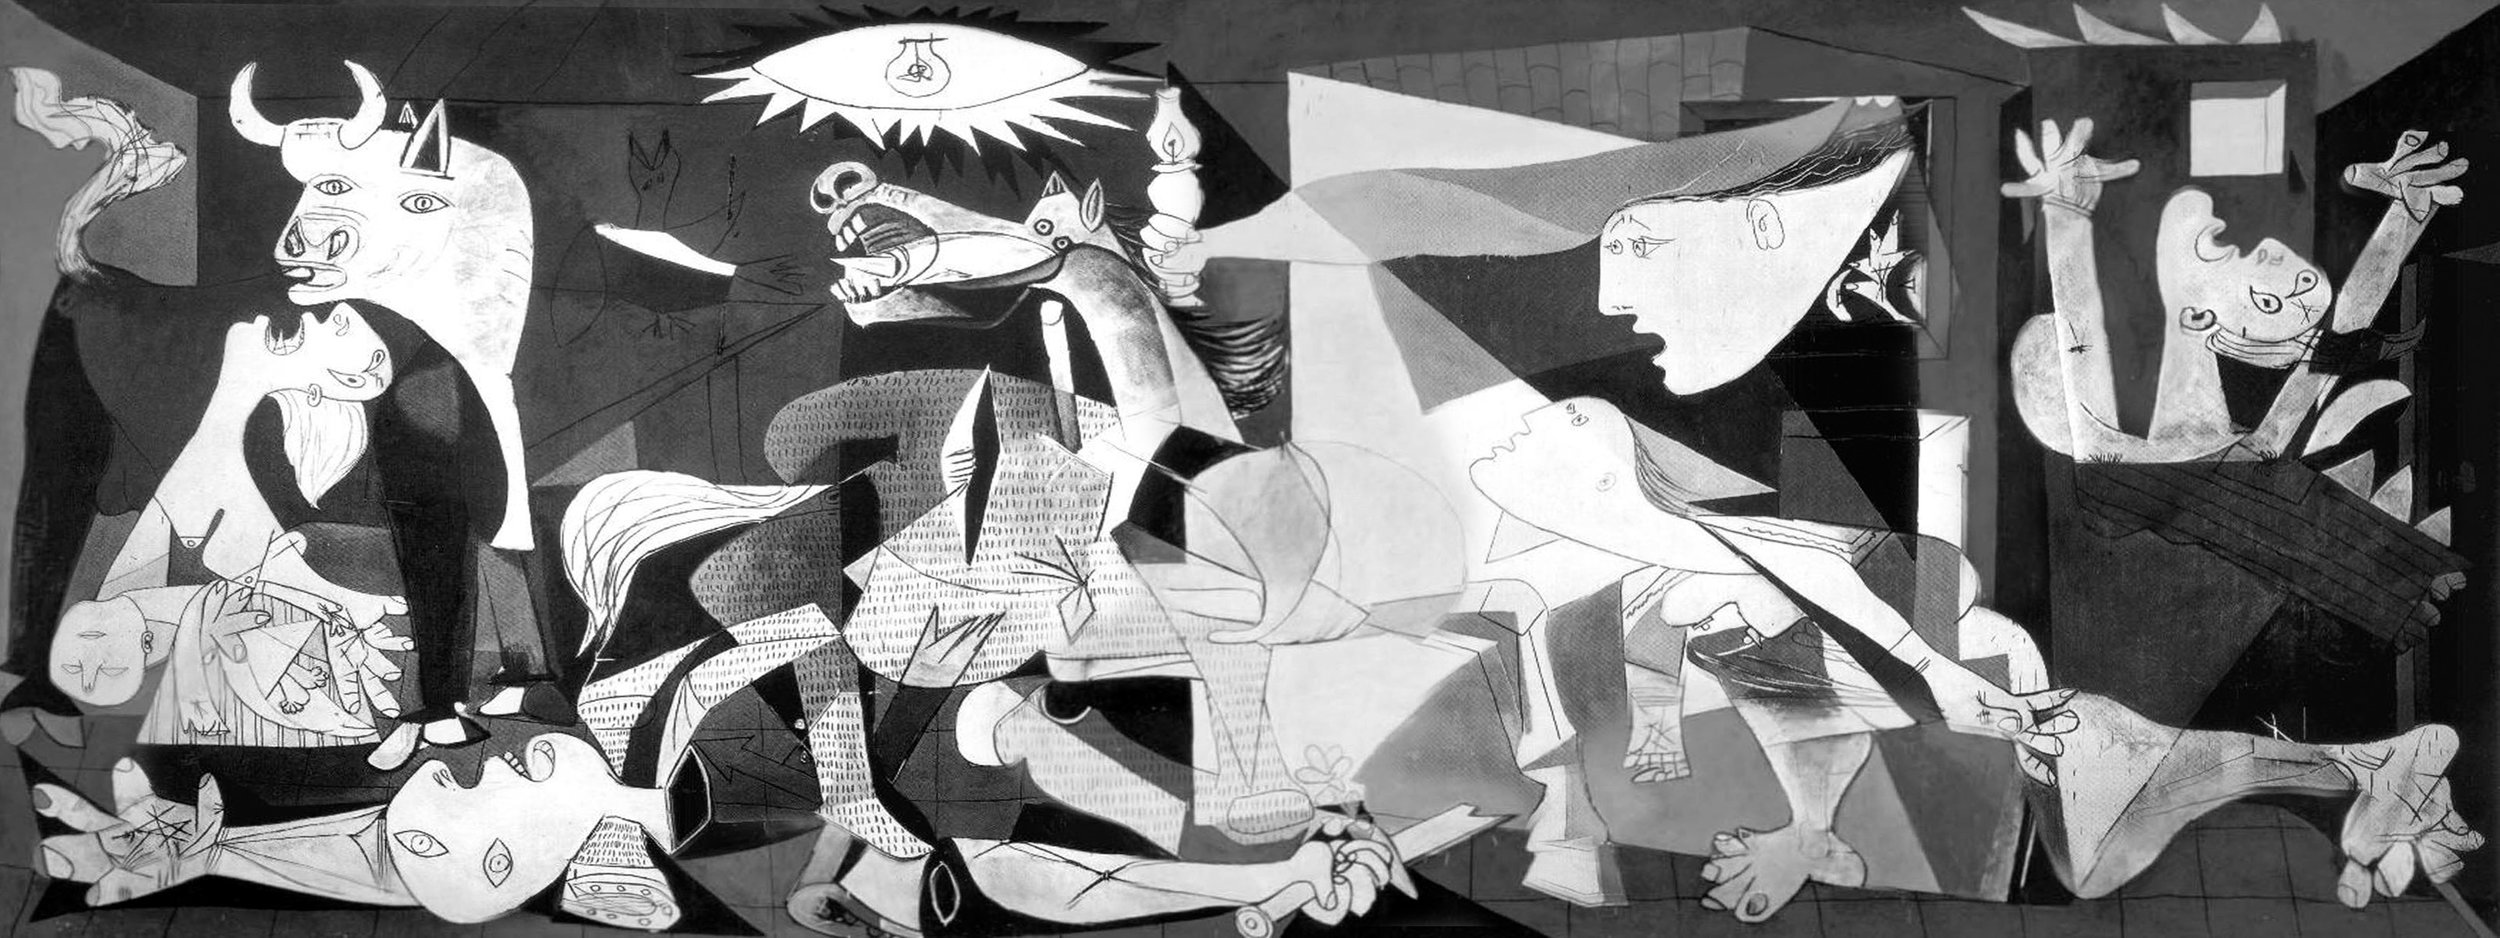 "Pablo Picasso,  Guernica , 1937, oil paint on canvas, 11' 6"" x 25' 6"". Located at the Museo Nacional Centro de Arte Reina Sofia."